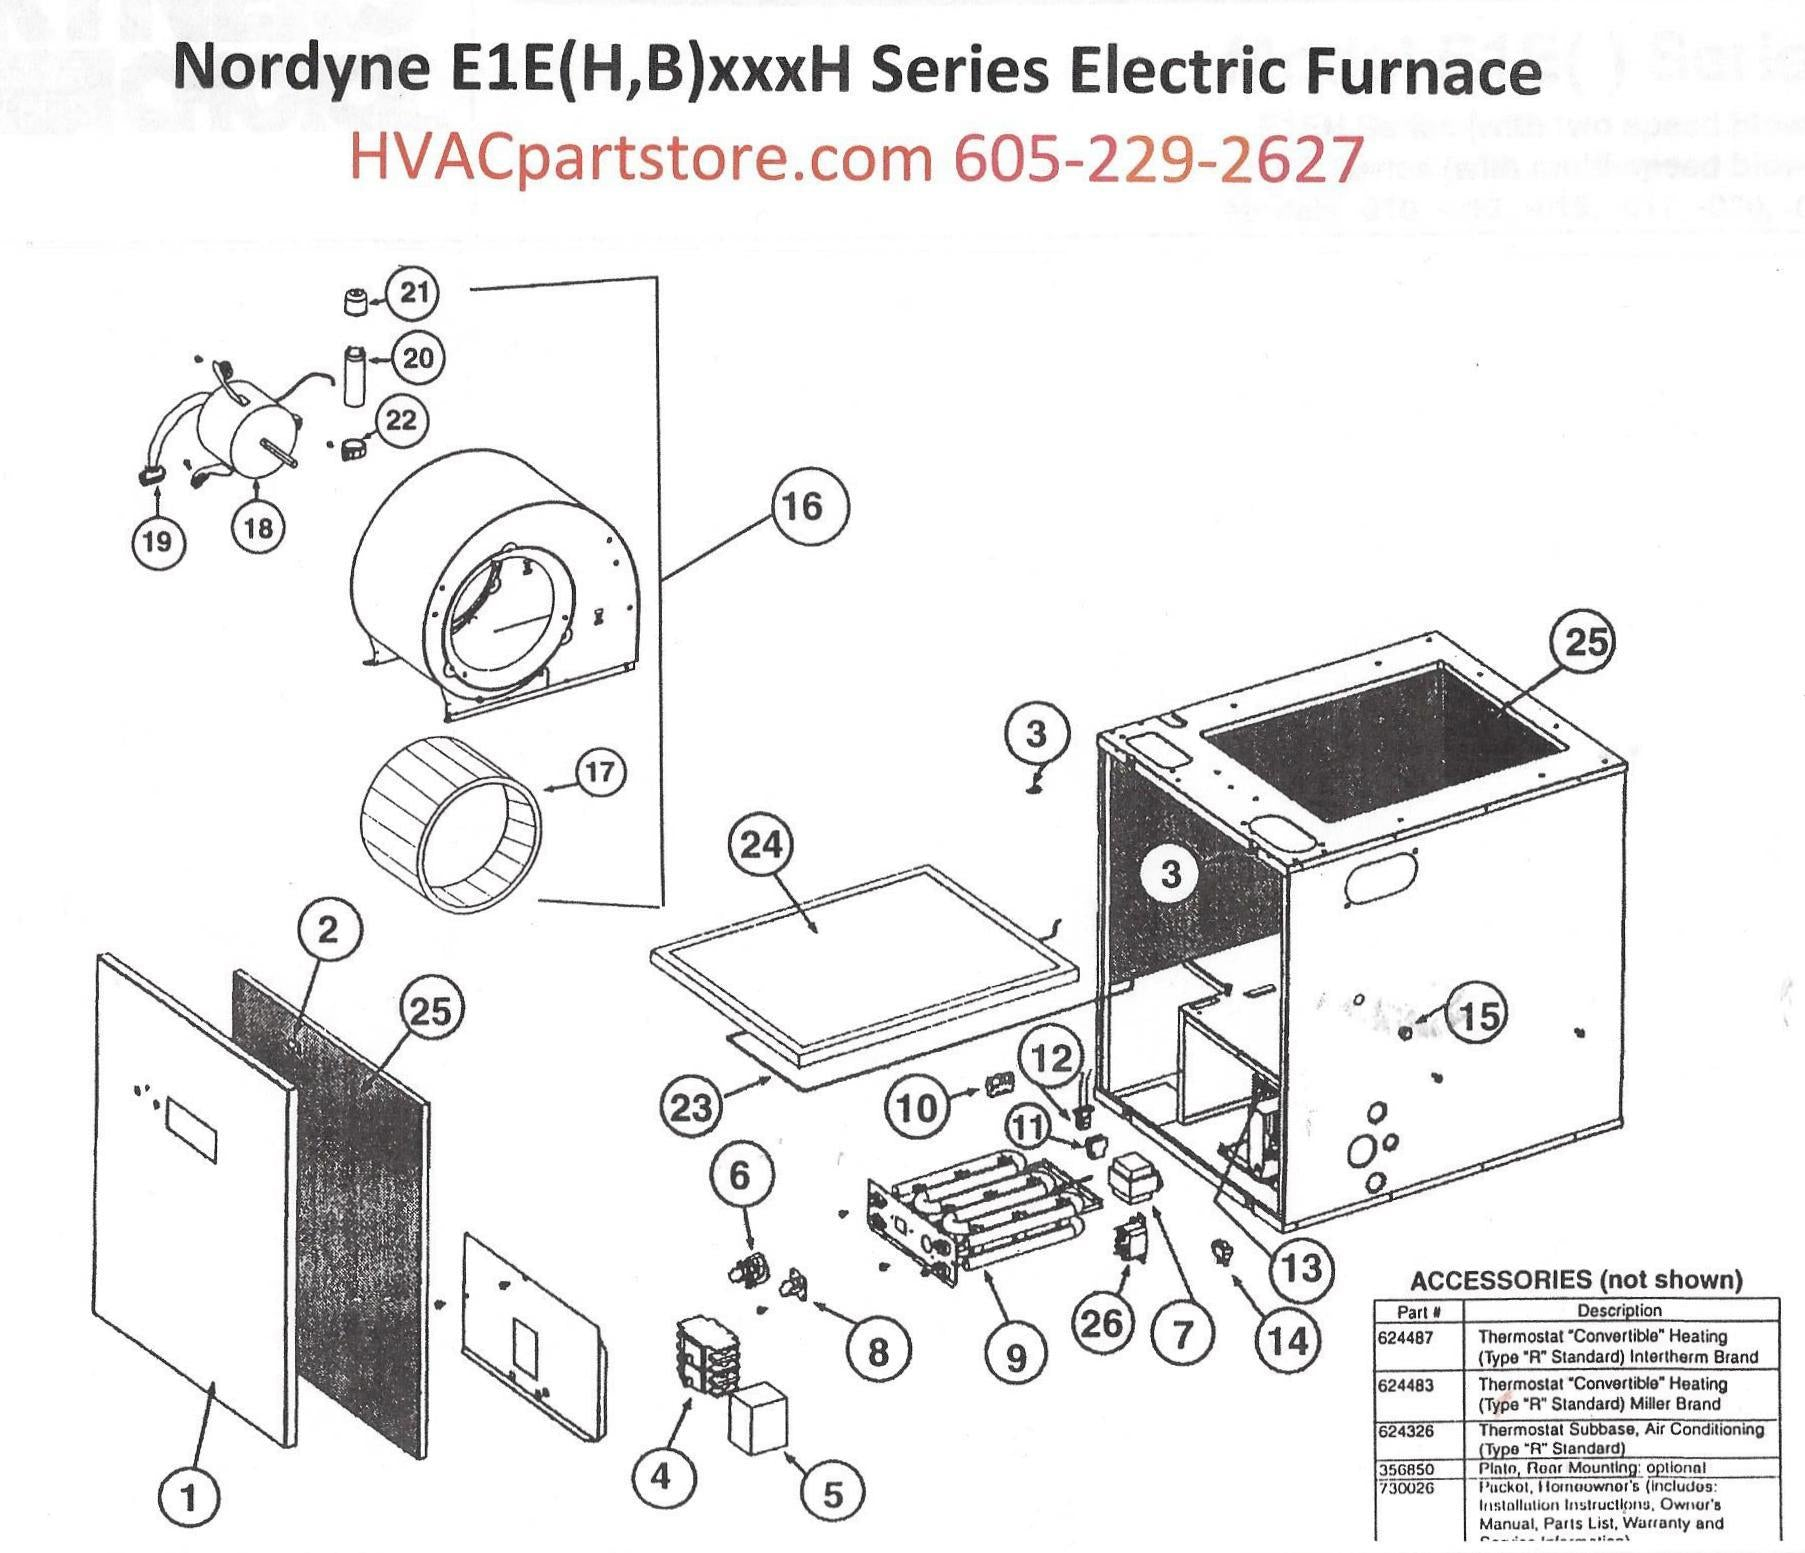 E1EH020H Nordyne Electric Furnace Parts